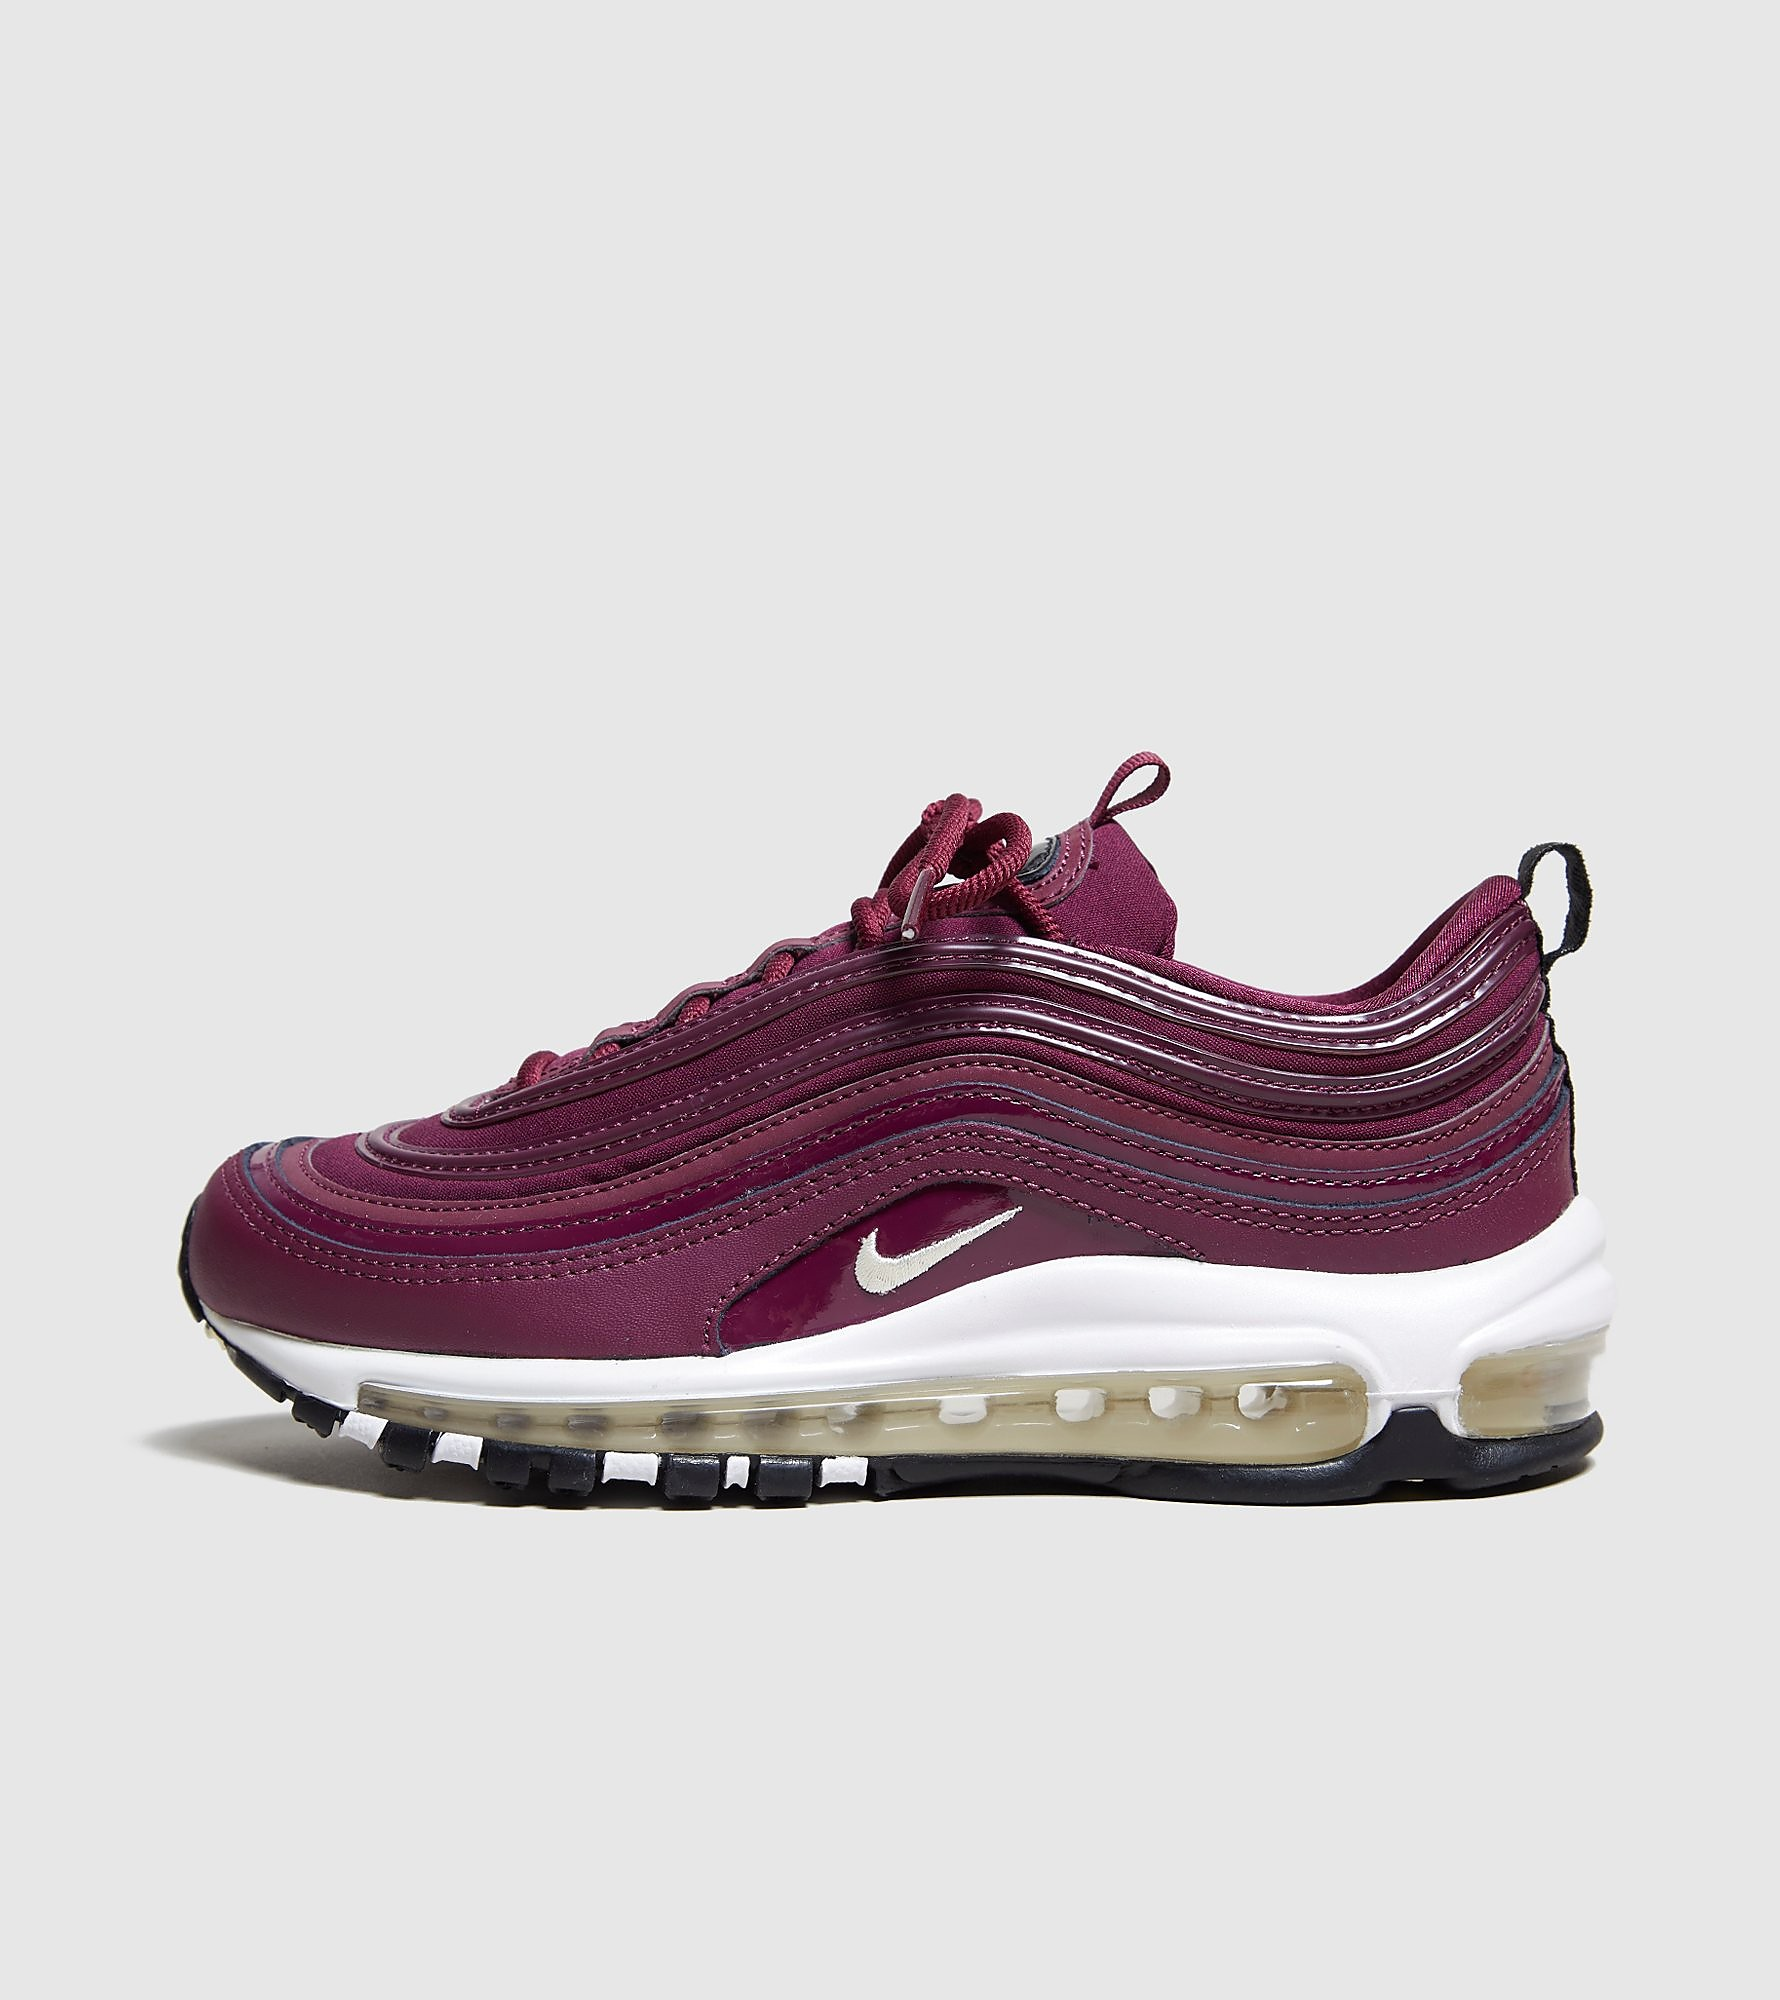 Nike Air Max 97 OG Women's, rojo/blanco